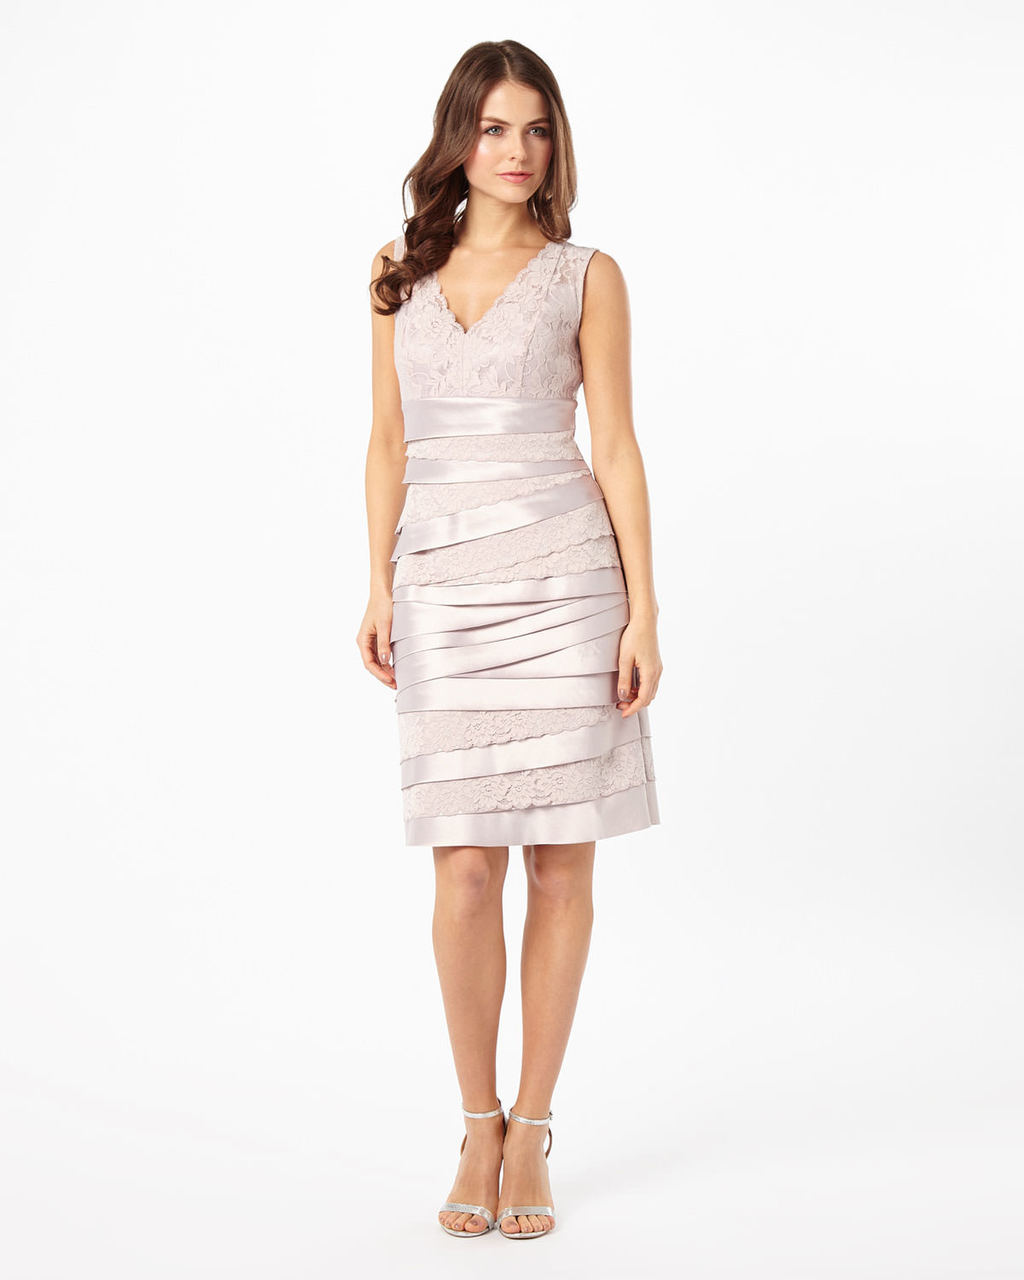 Tamara Layered Dress - style: shift; neckline: low v-neck; fit: tailored/fitted; pattern: plain; sleeve style: sleeveless; predominant colour: blush; occasions: evening, occasion; length: on the knee; fibres: silk - 100%; sleeve length: sleeveless; pattern type: fabric; texture group: woven light midweight; season: s/s 2016; wardrobe: event